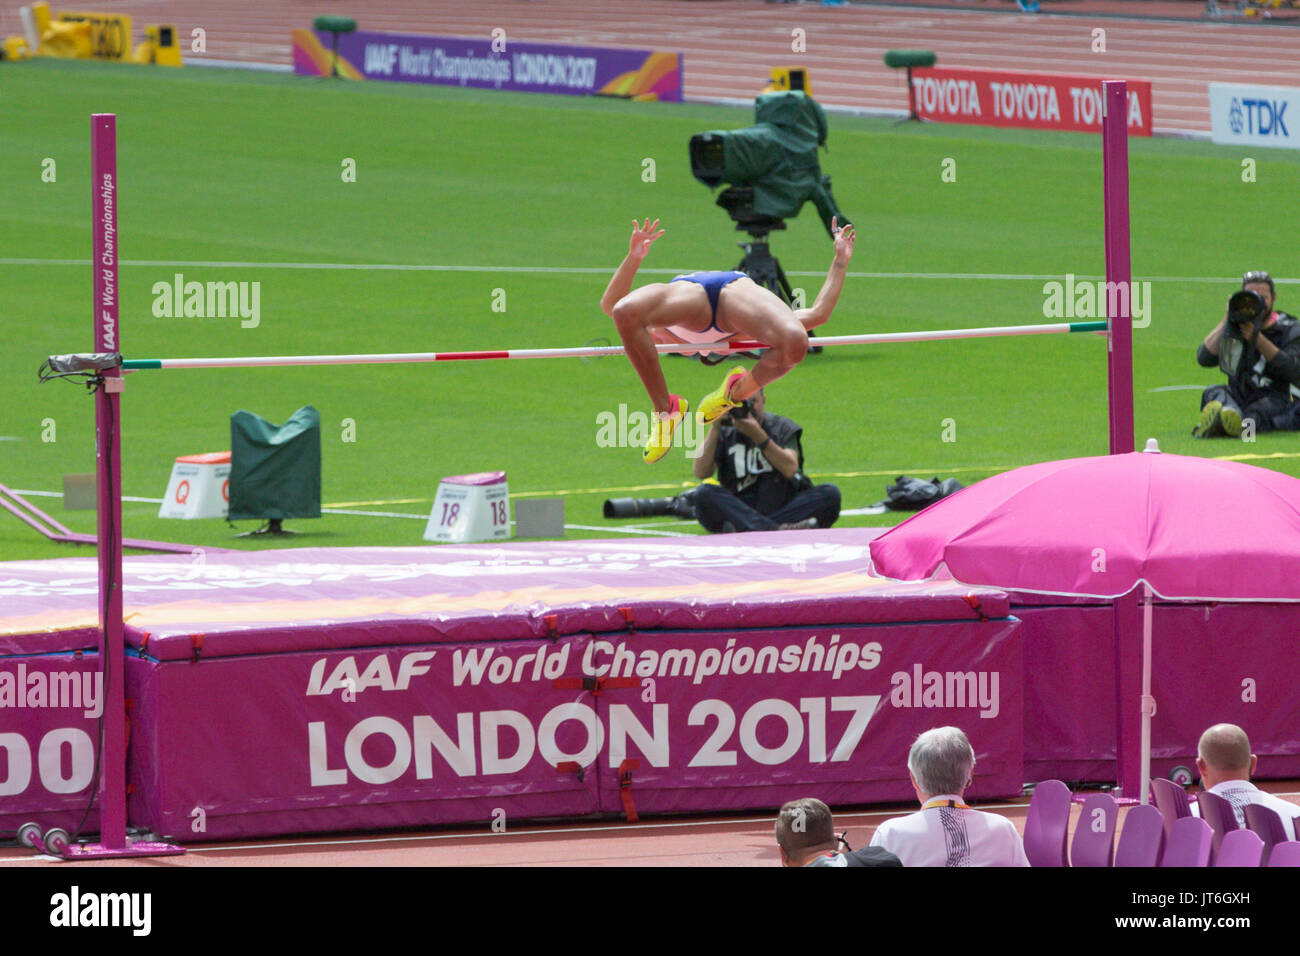 General view of the London Stadium during the IAAF World Athletics Championships Stock Photo